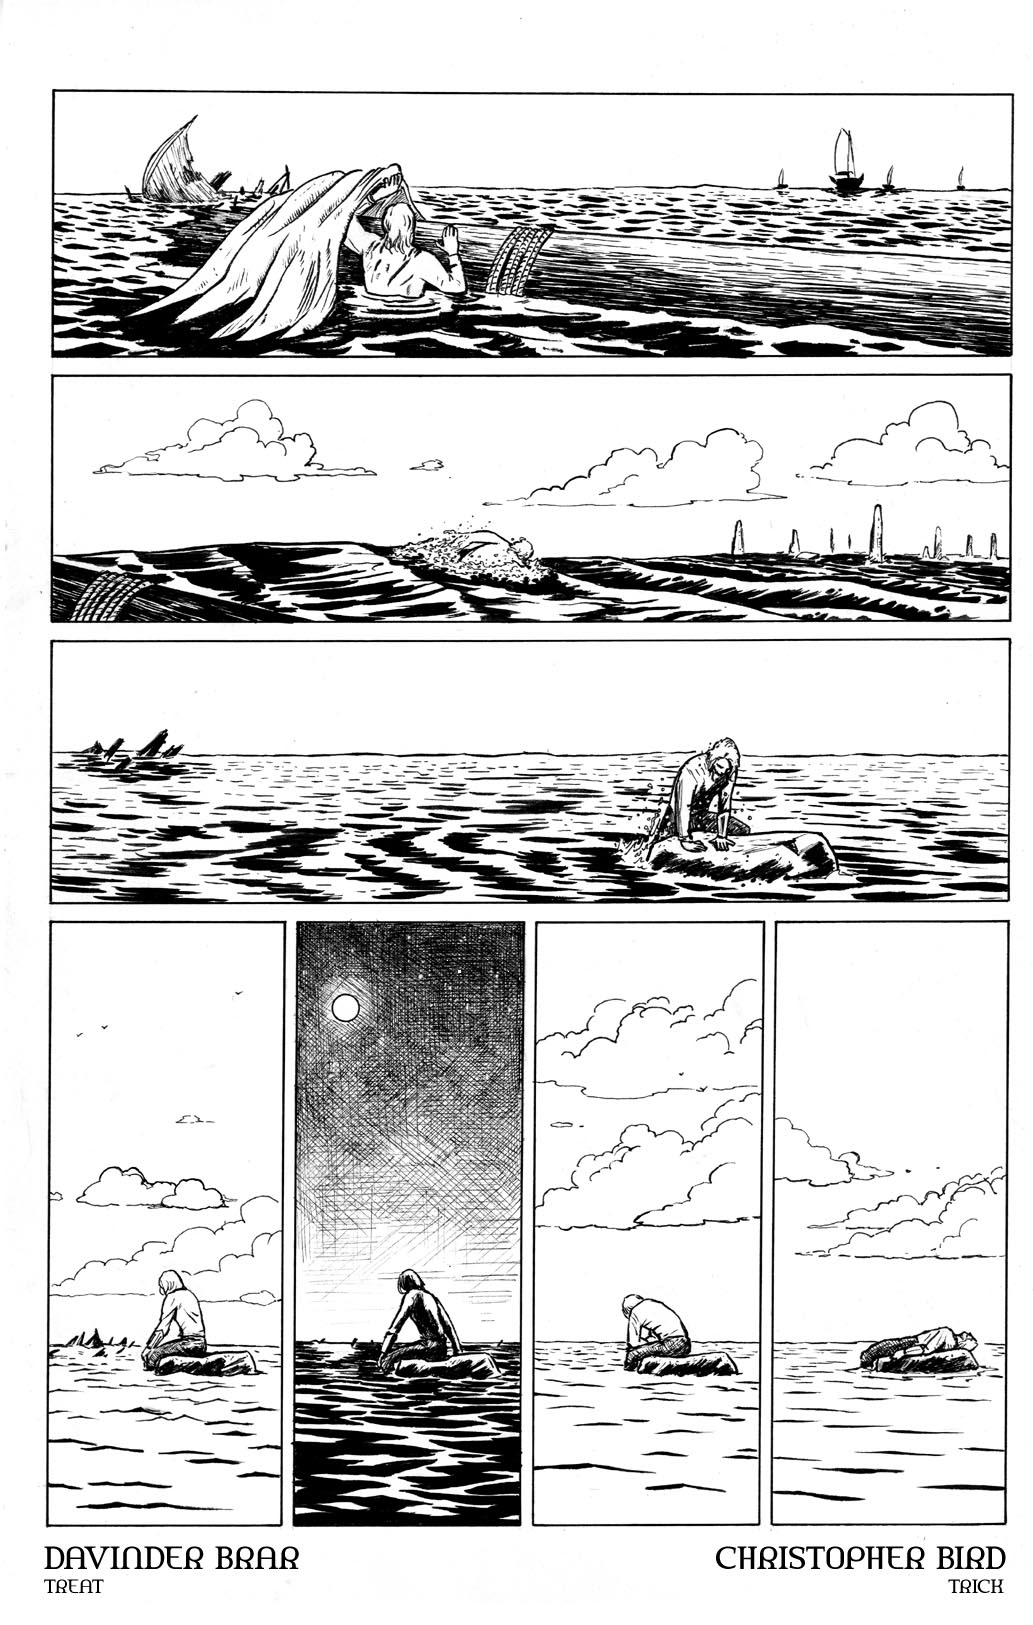 Book 1, page 23